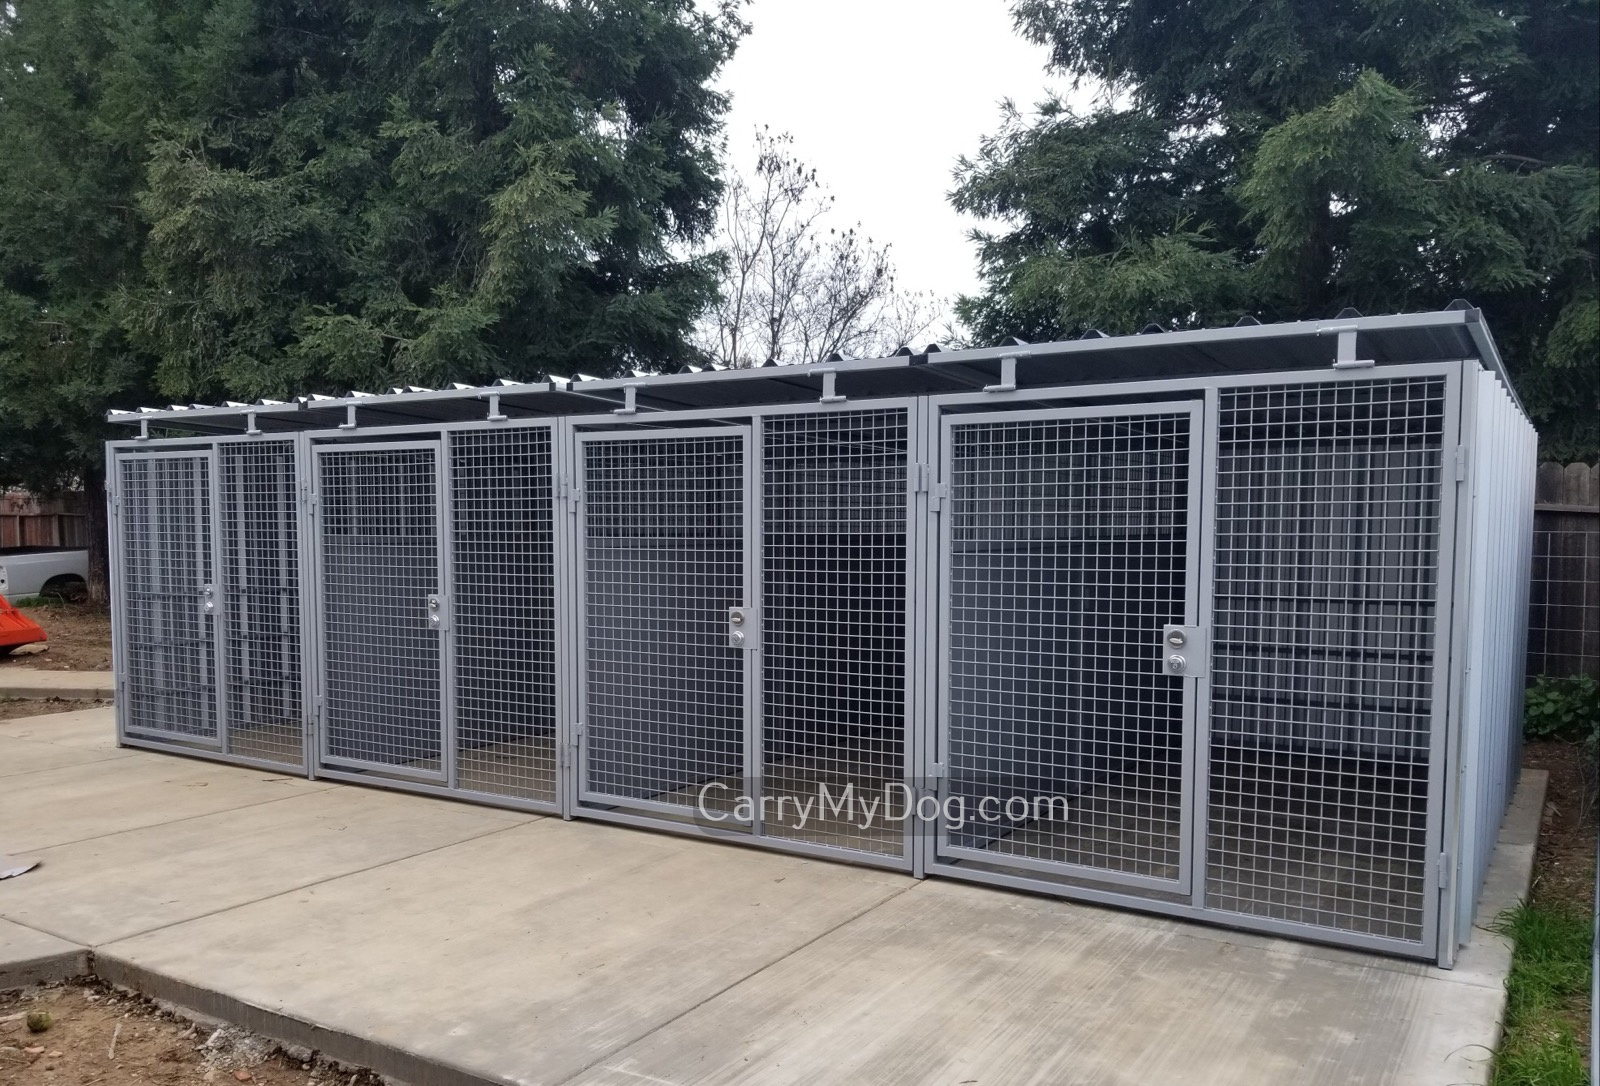 Xtreme-4-Run-Strongest-Outdoor-Dog-Kennel-from-Carrymydog.com